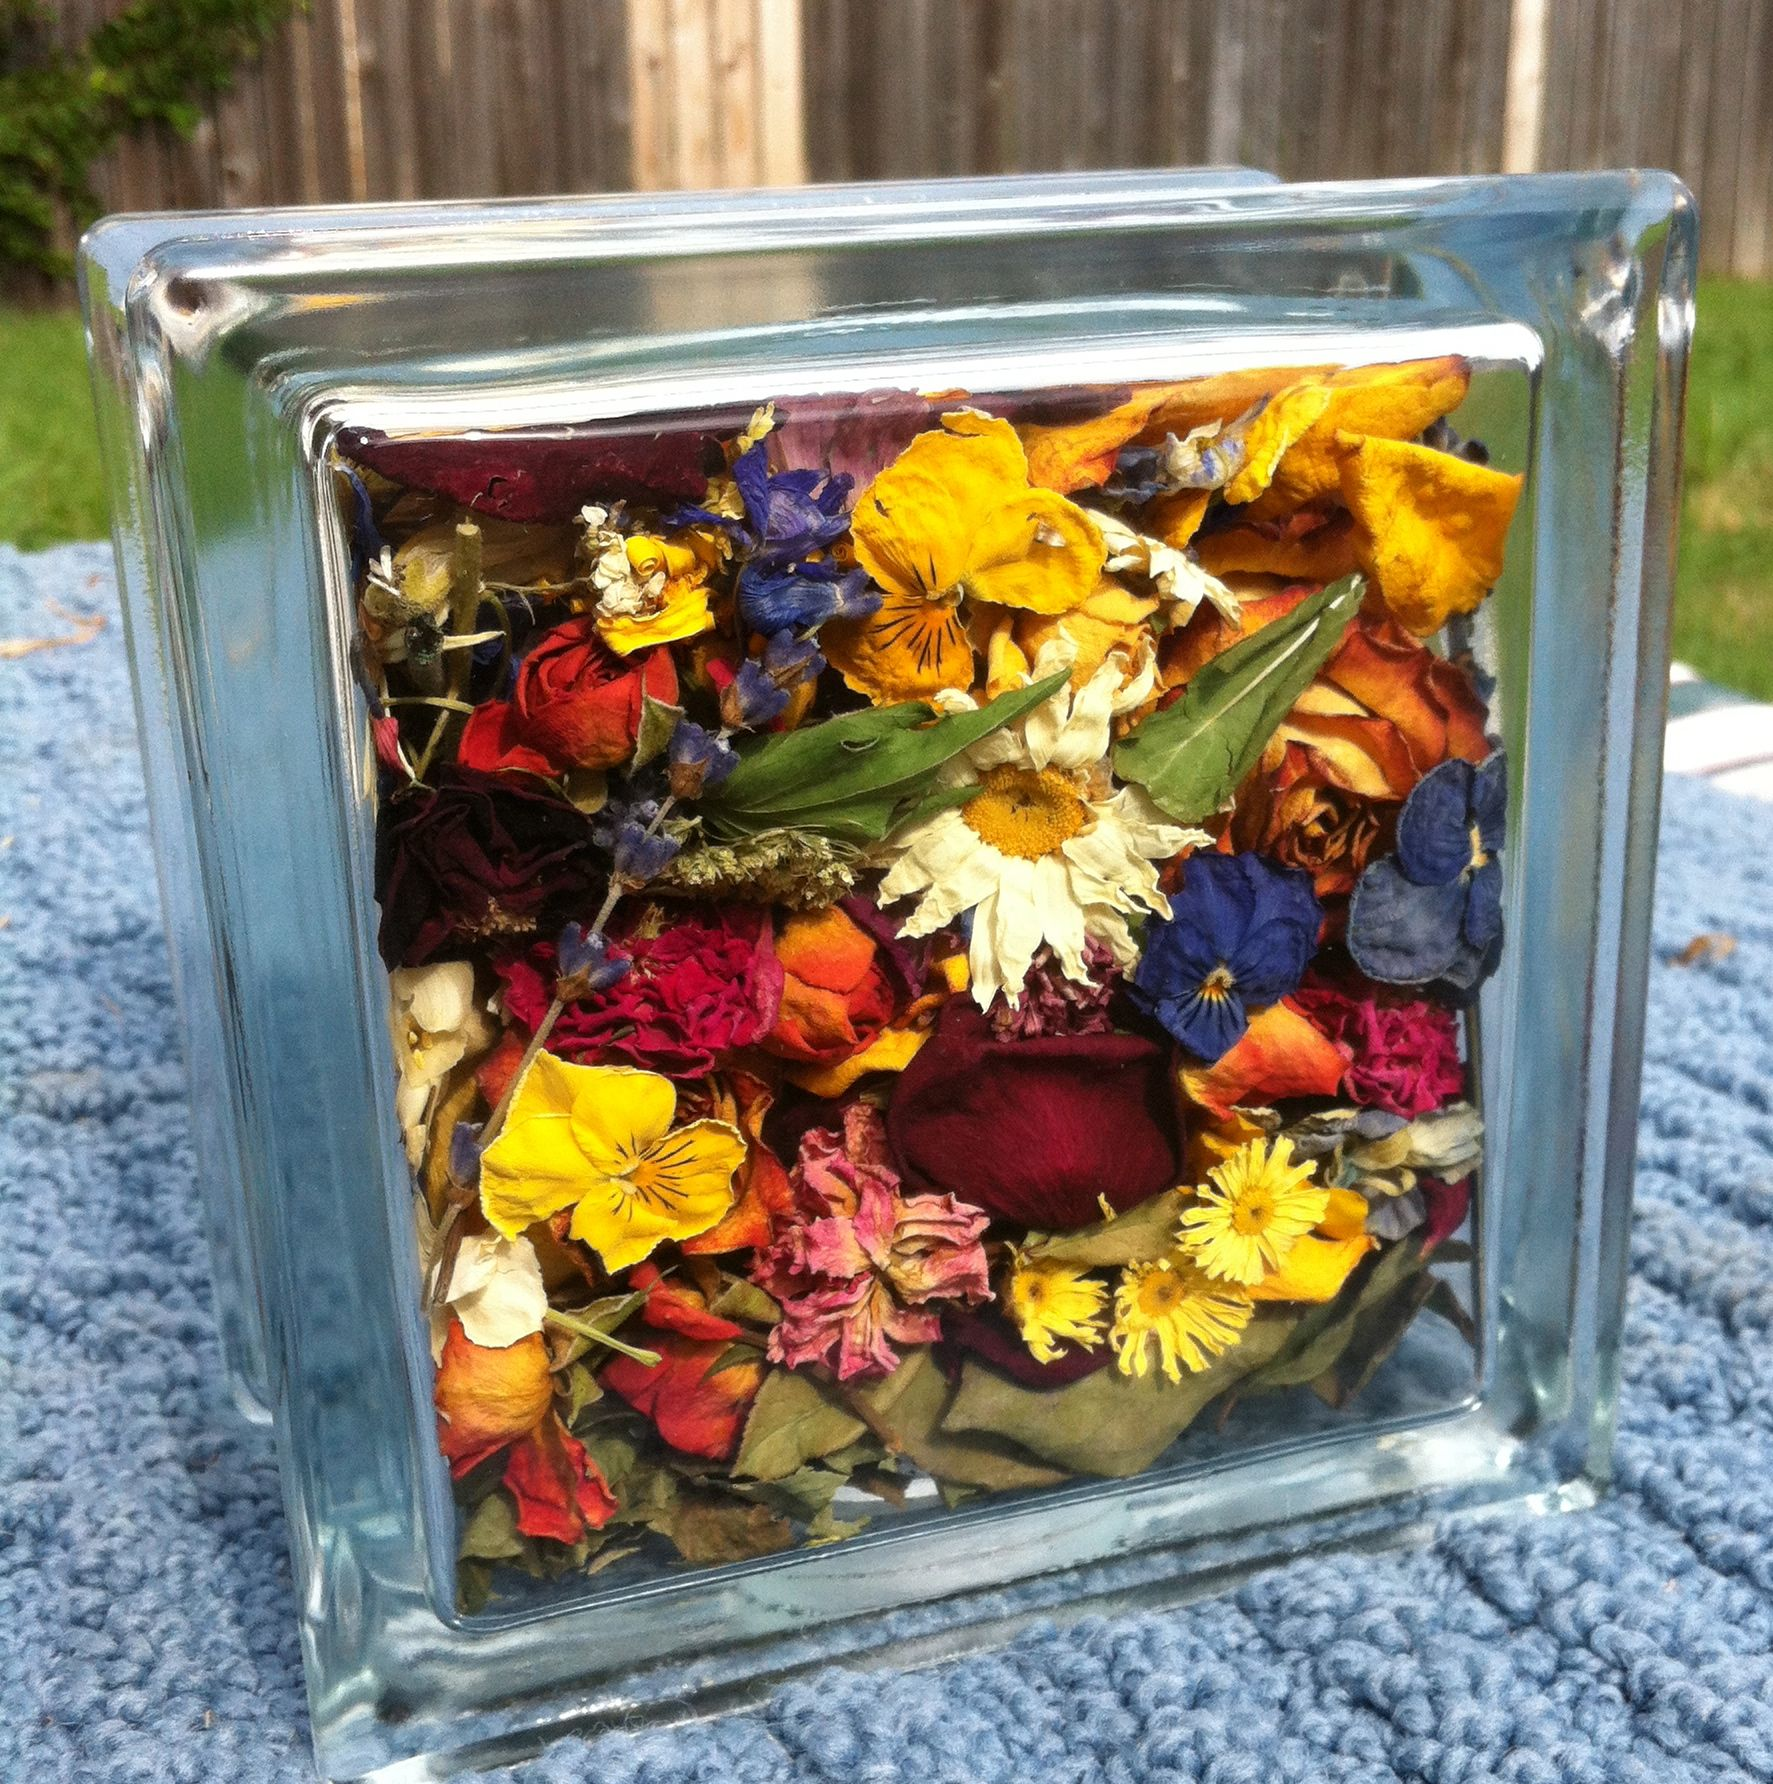 Save On Wedding Flowers: Cool Way To Save Dried Flowers From A Favorite Bouquet